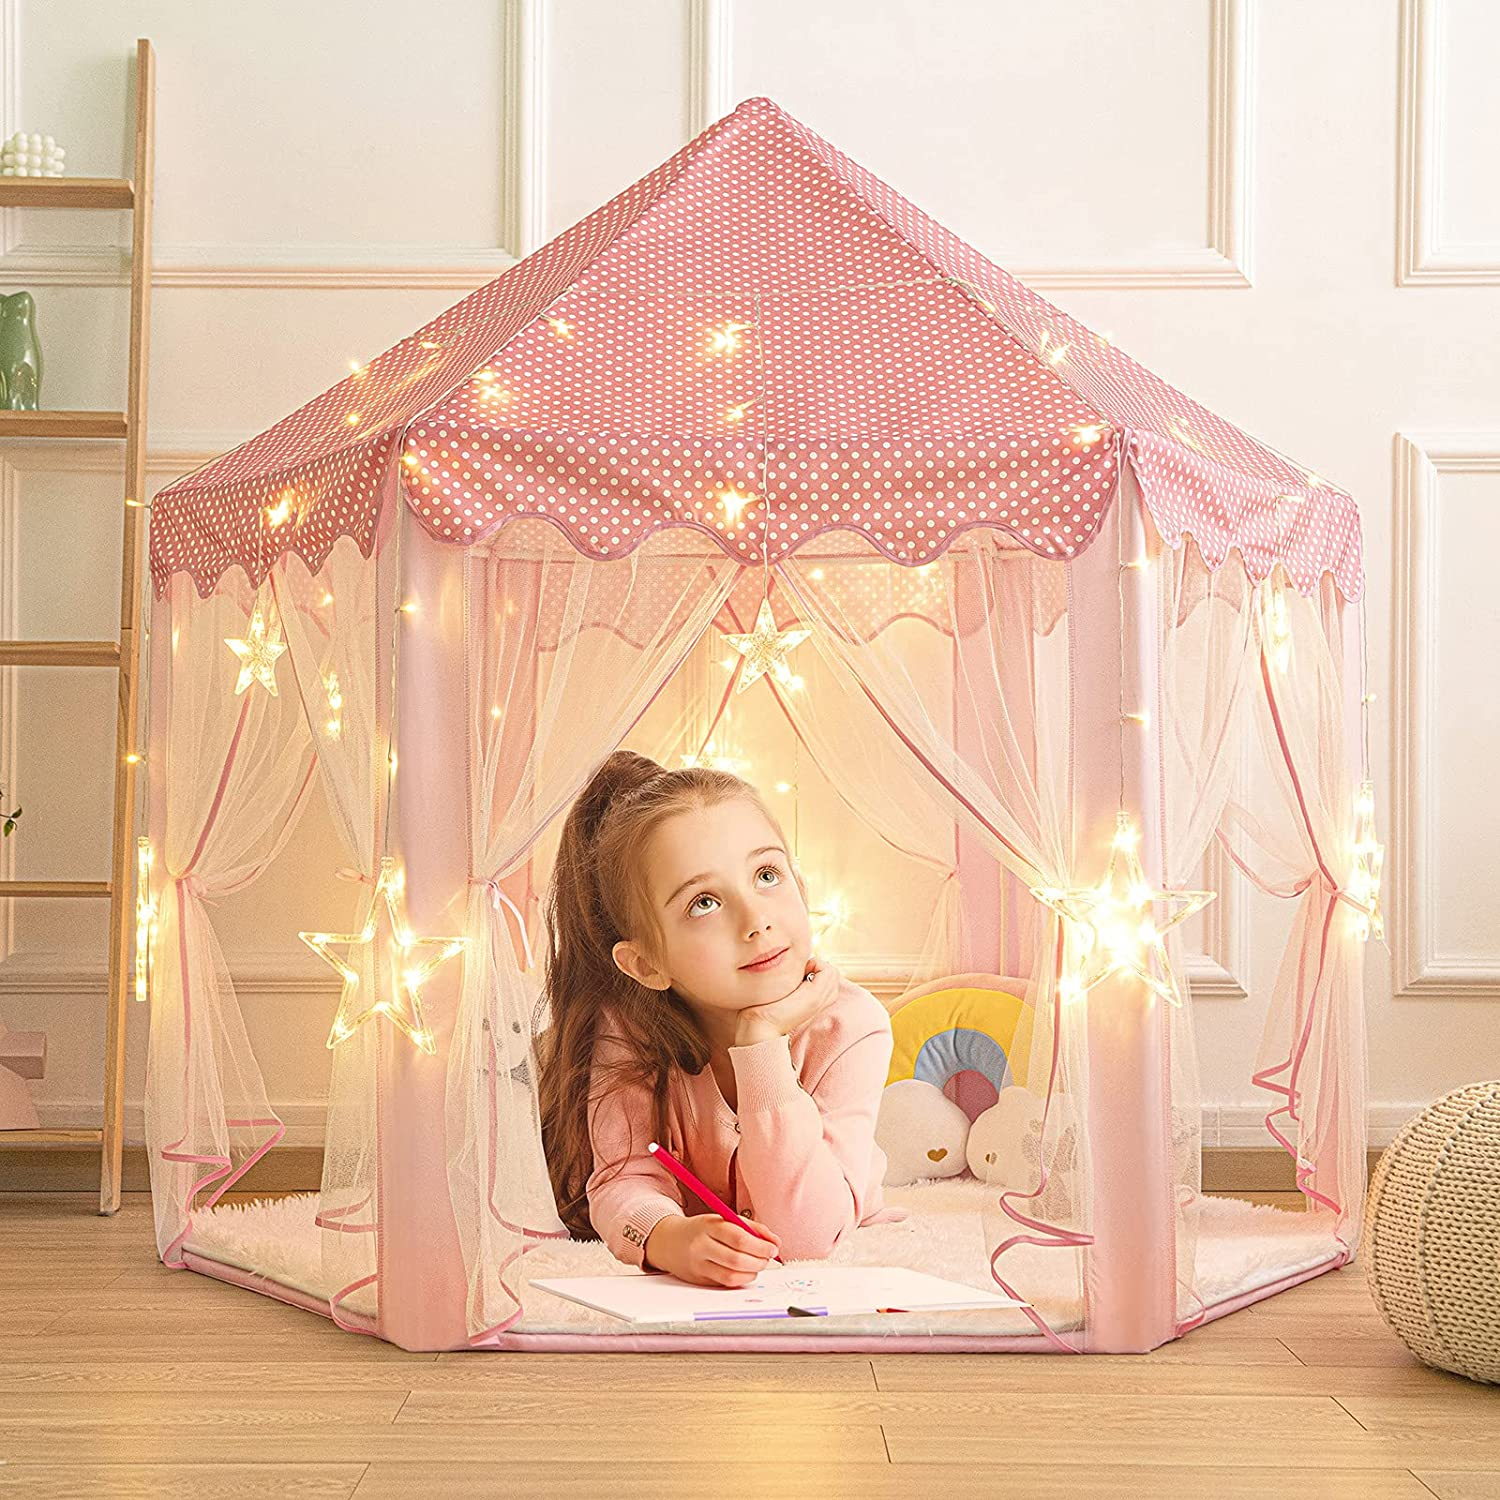 KIXINWA Kids Play Tent Max 56% OFF Little Girls Old Years for Toys Gift Max 60% OFF 3